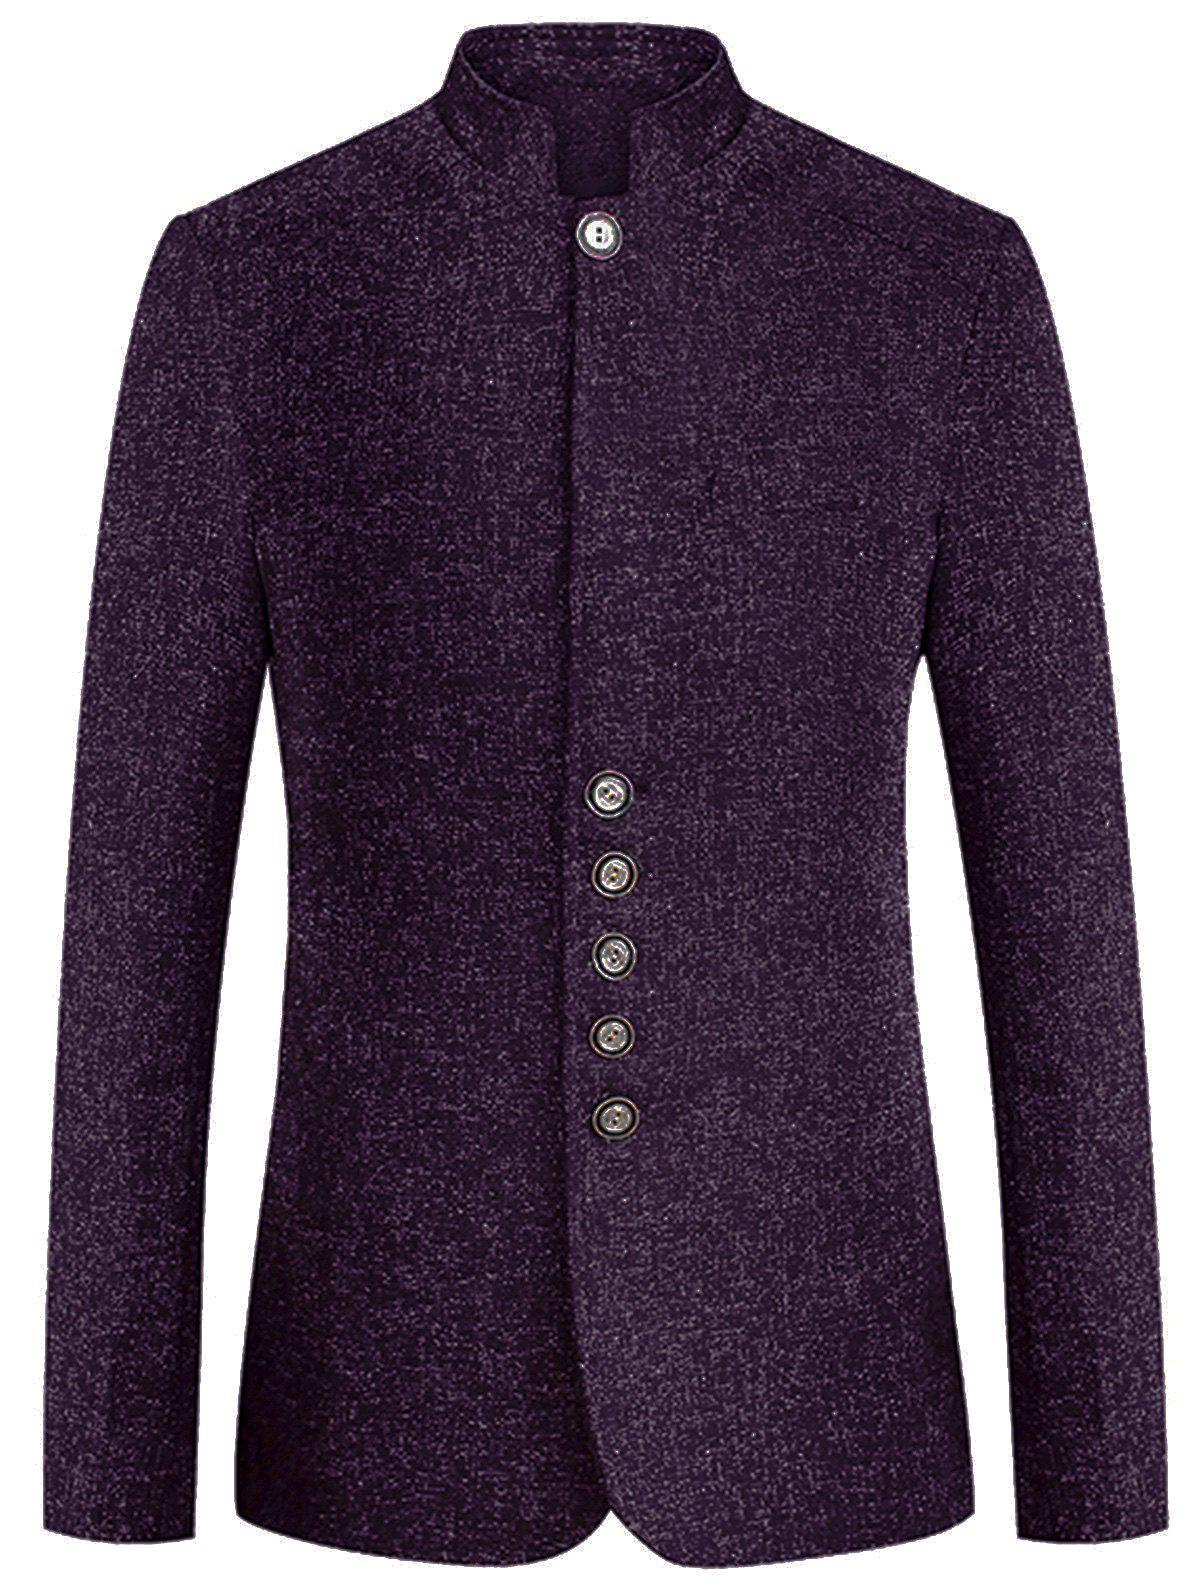 Fancy Mandarin Collar Wool Blend Single Breasted Blazer